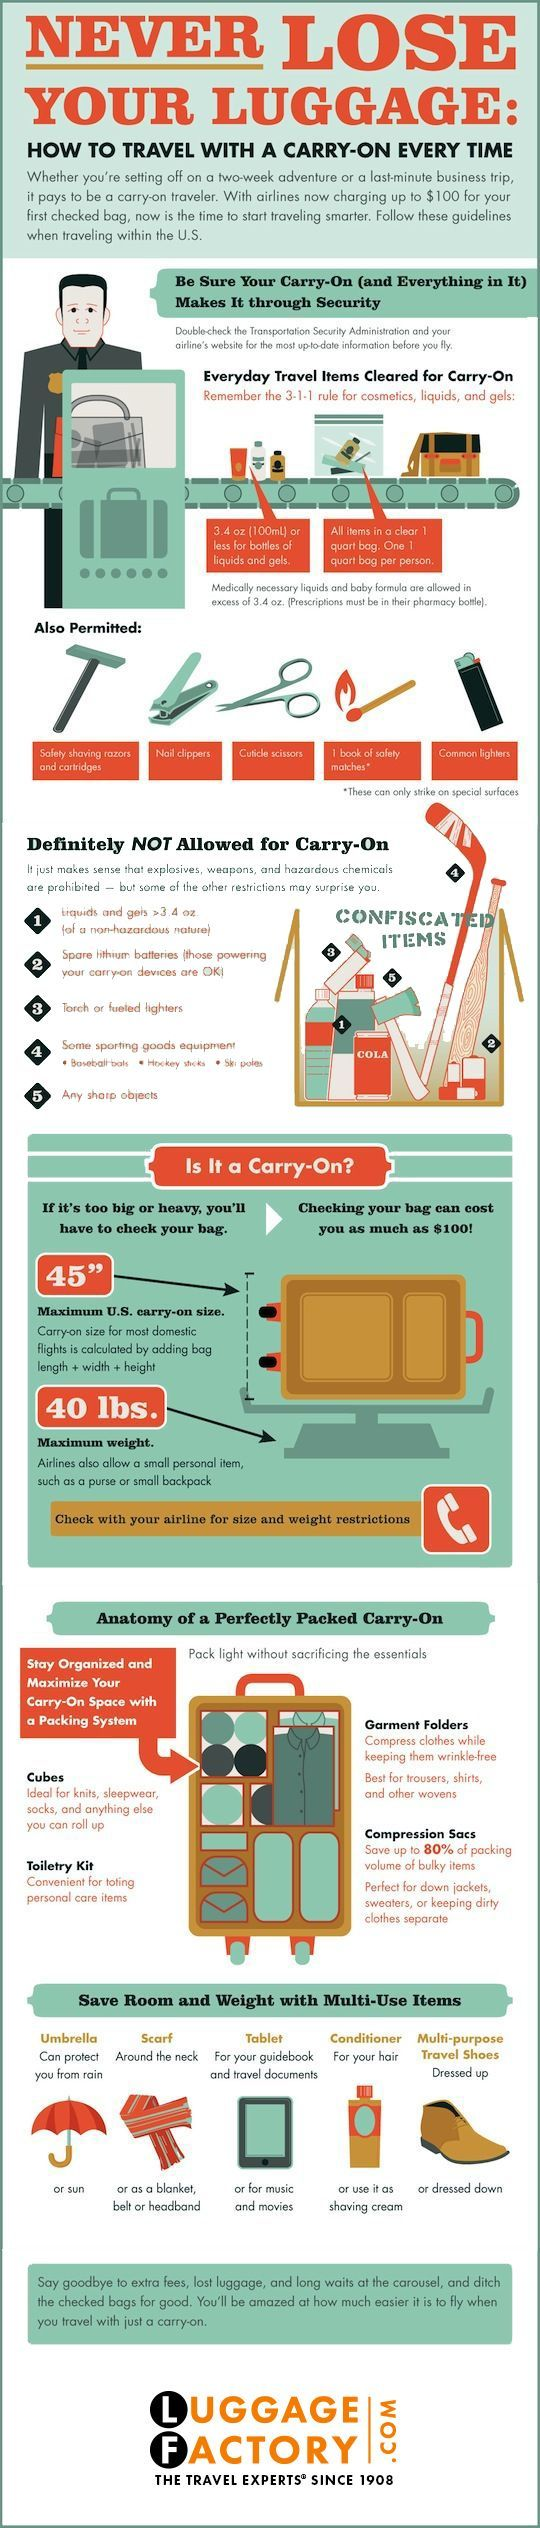 How to travel with just one carry on each time #travel #vacation #information This Pin re-pinned by www.avacationrental4me.com